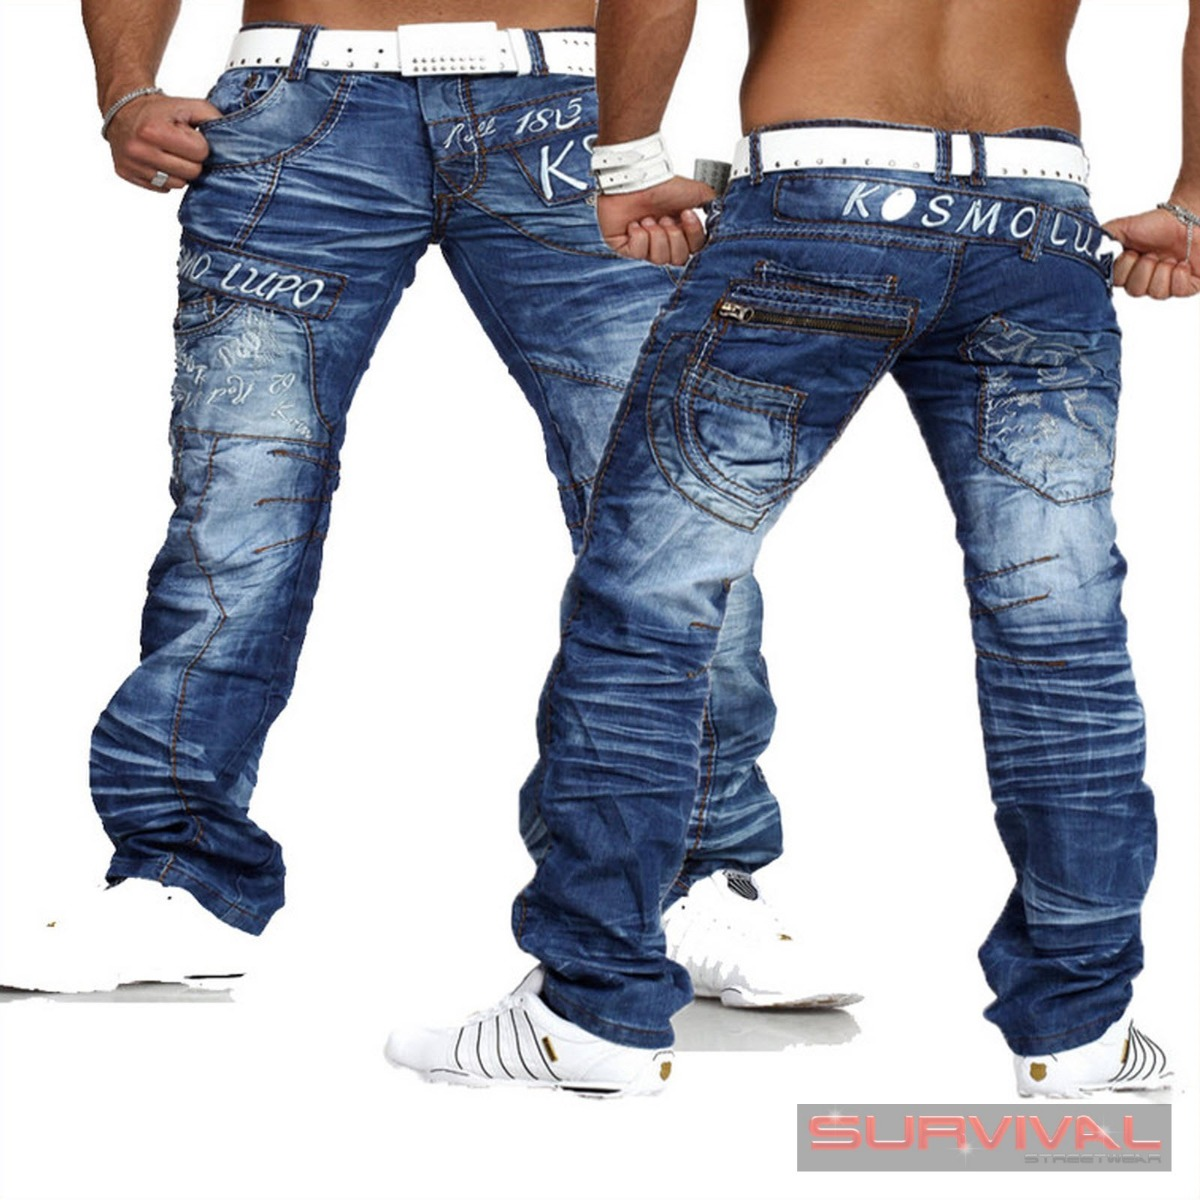 new mens kosmo lupo jeans sz 30 32 34 36 38 italian. Black Bedroom Furniture Sets. Home Design Ideas